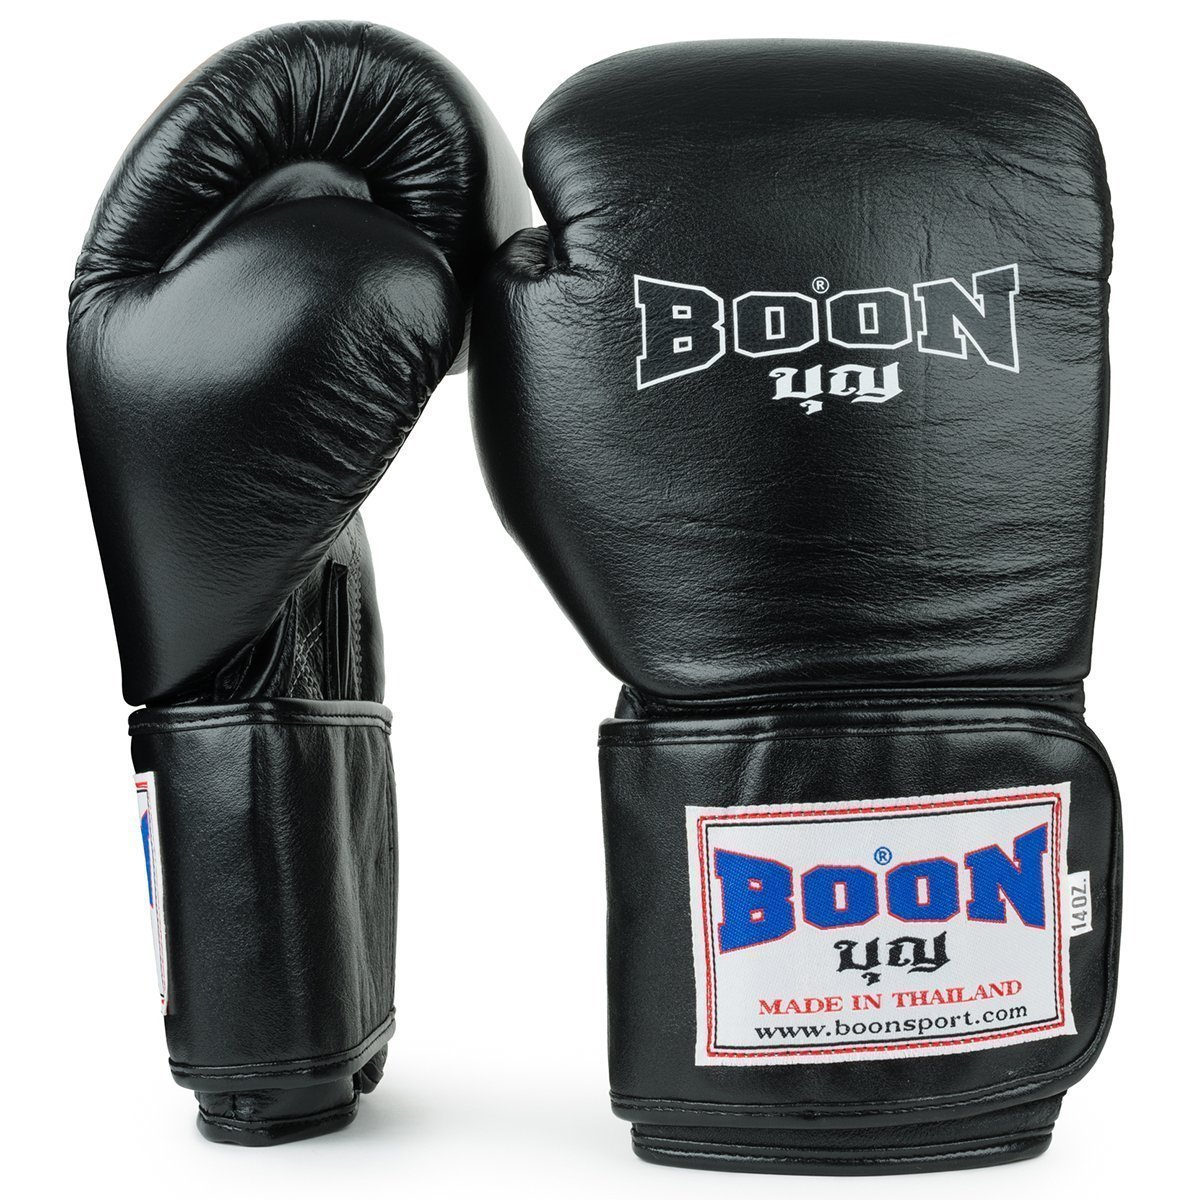 Boon Sport traditional black muay thai boxing gloves